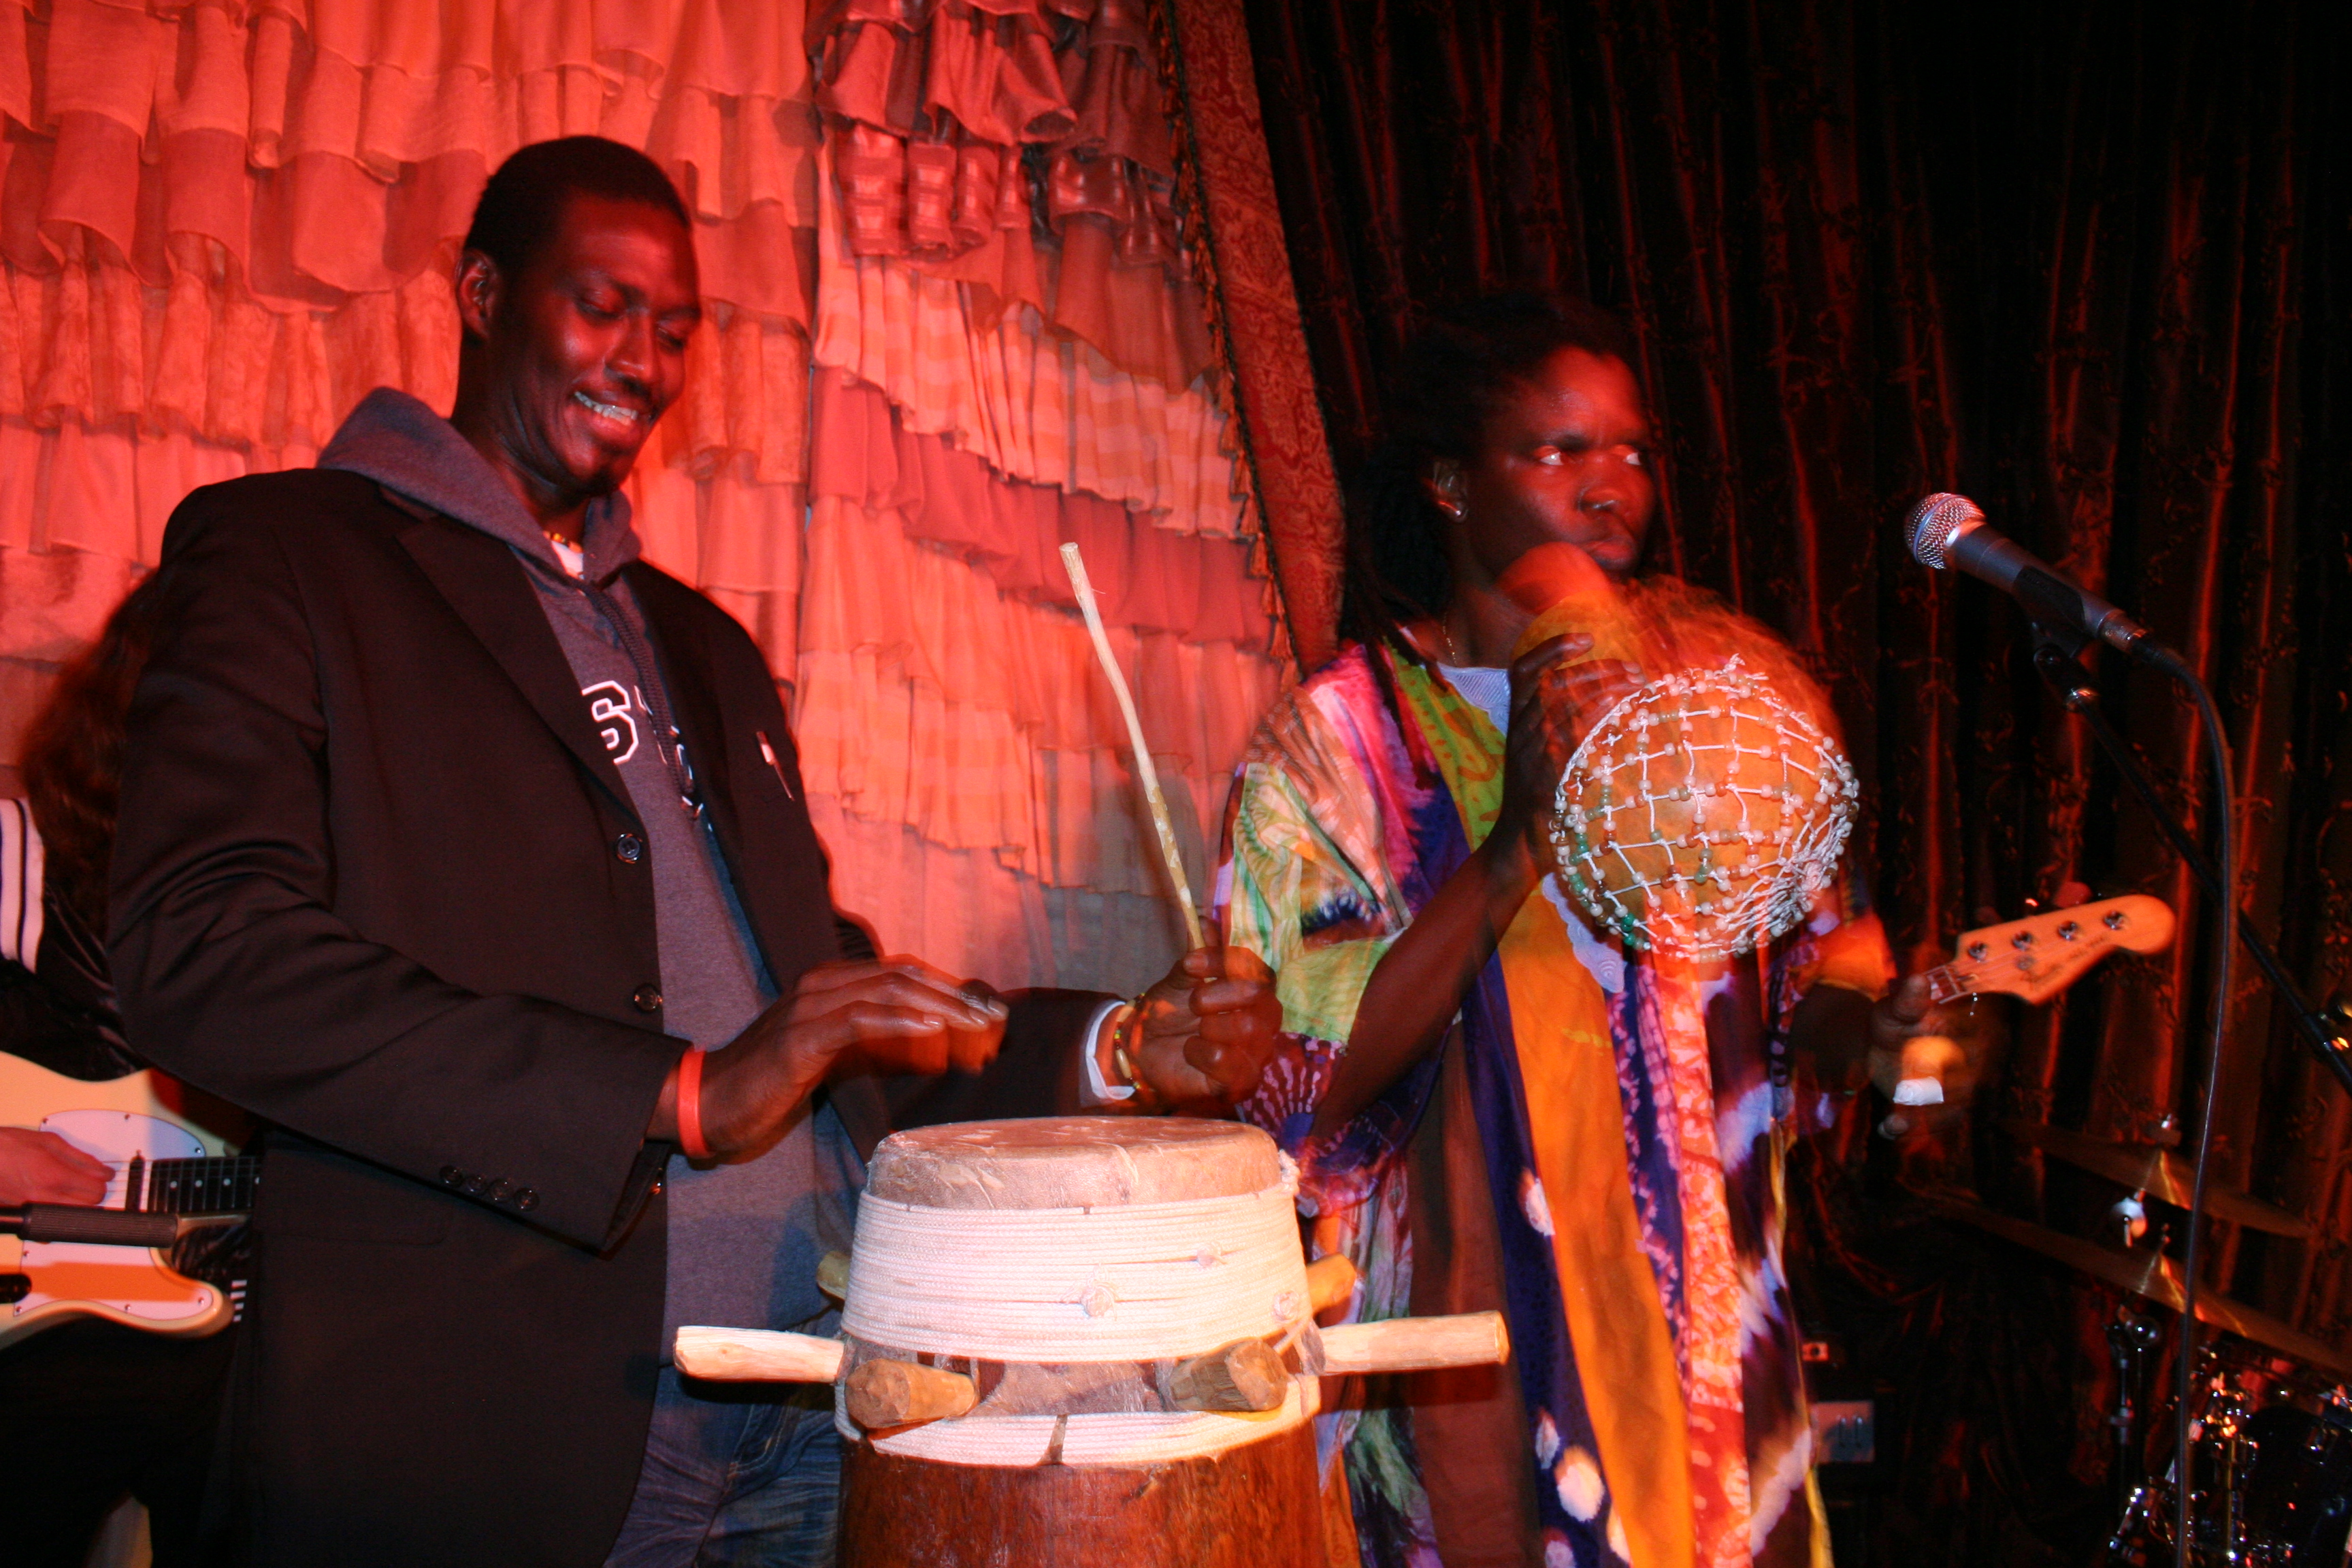 Moustapha Faye plays with Lamine toure and Group Saloum, at the Beehive.